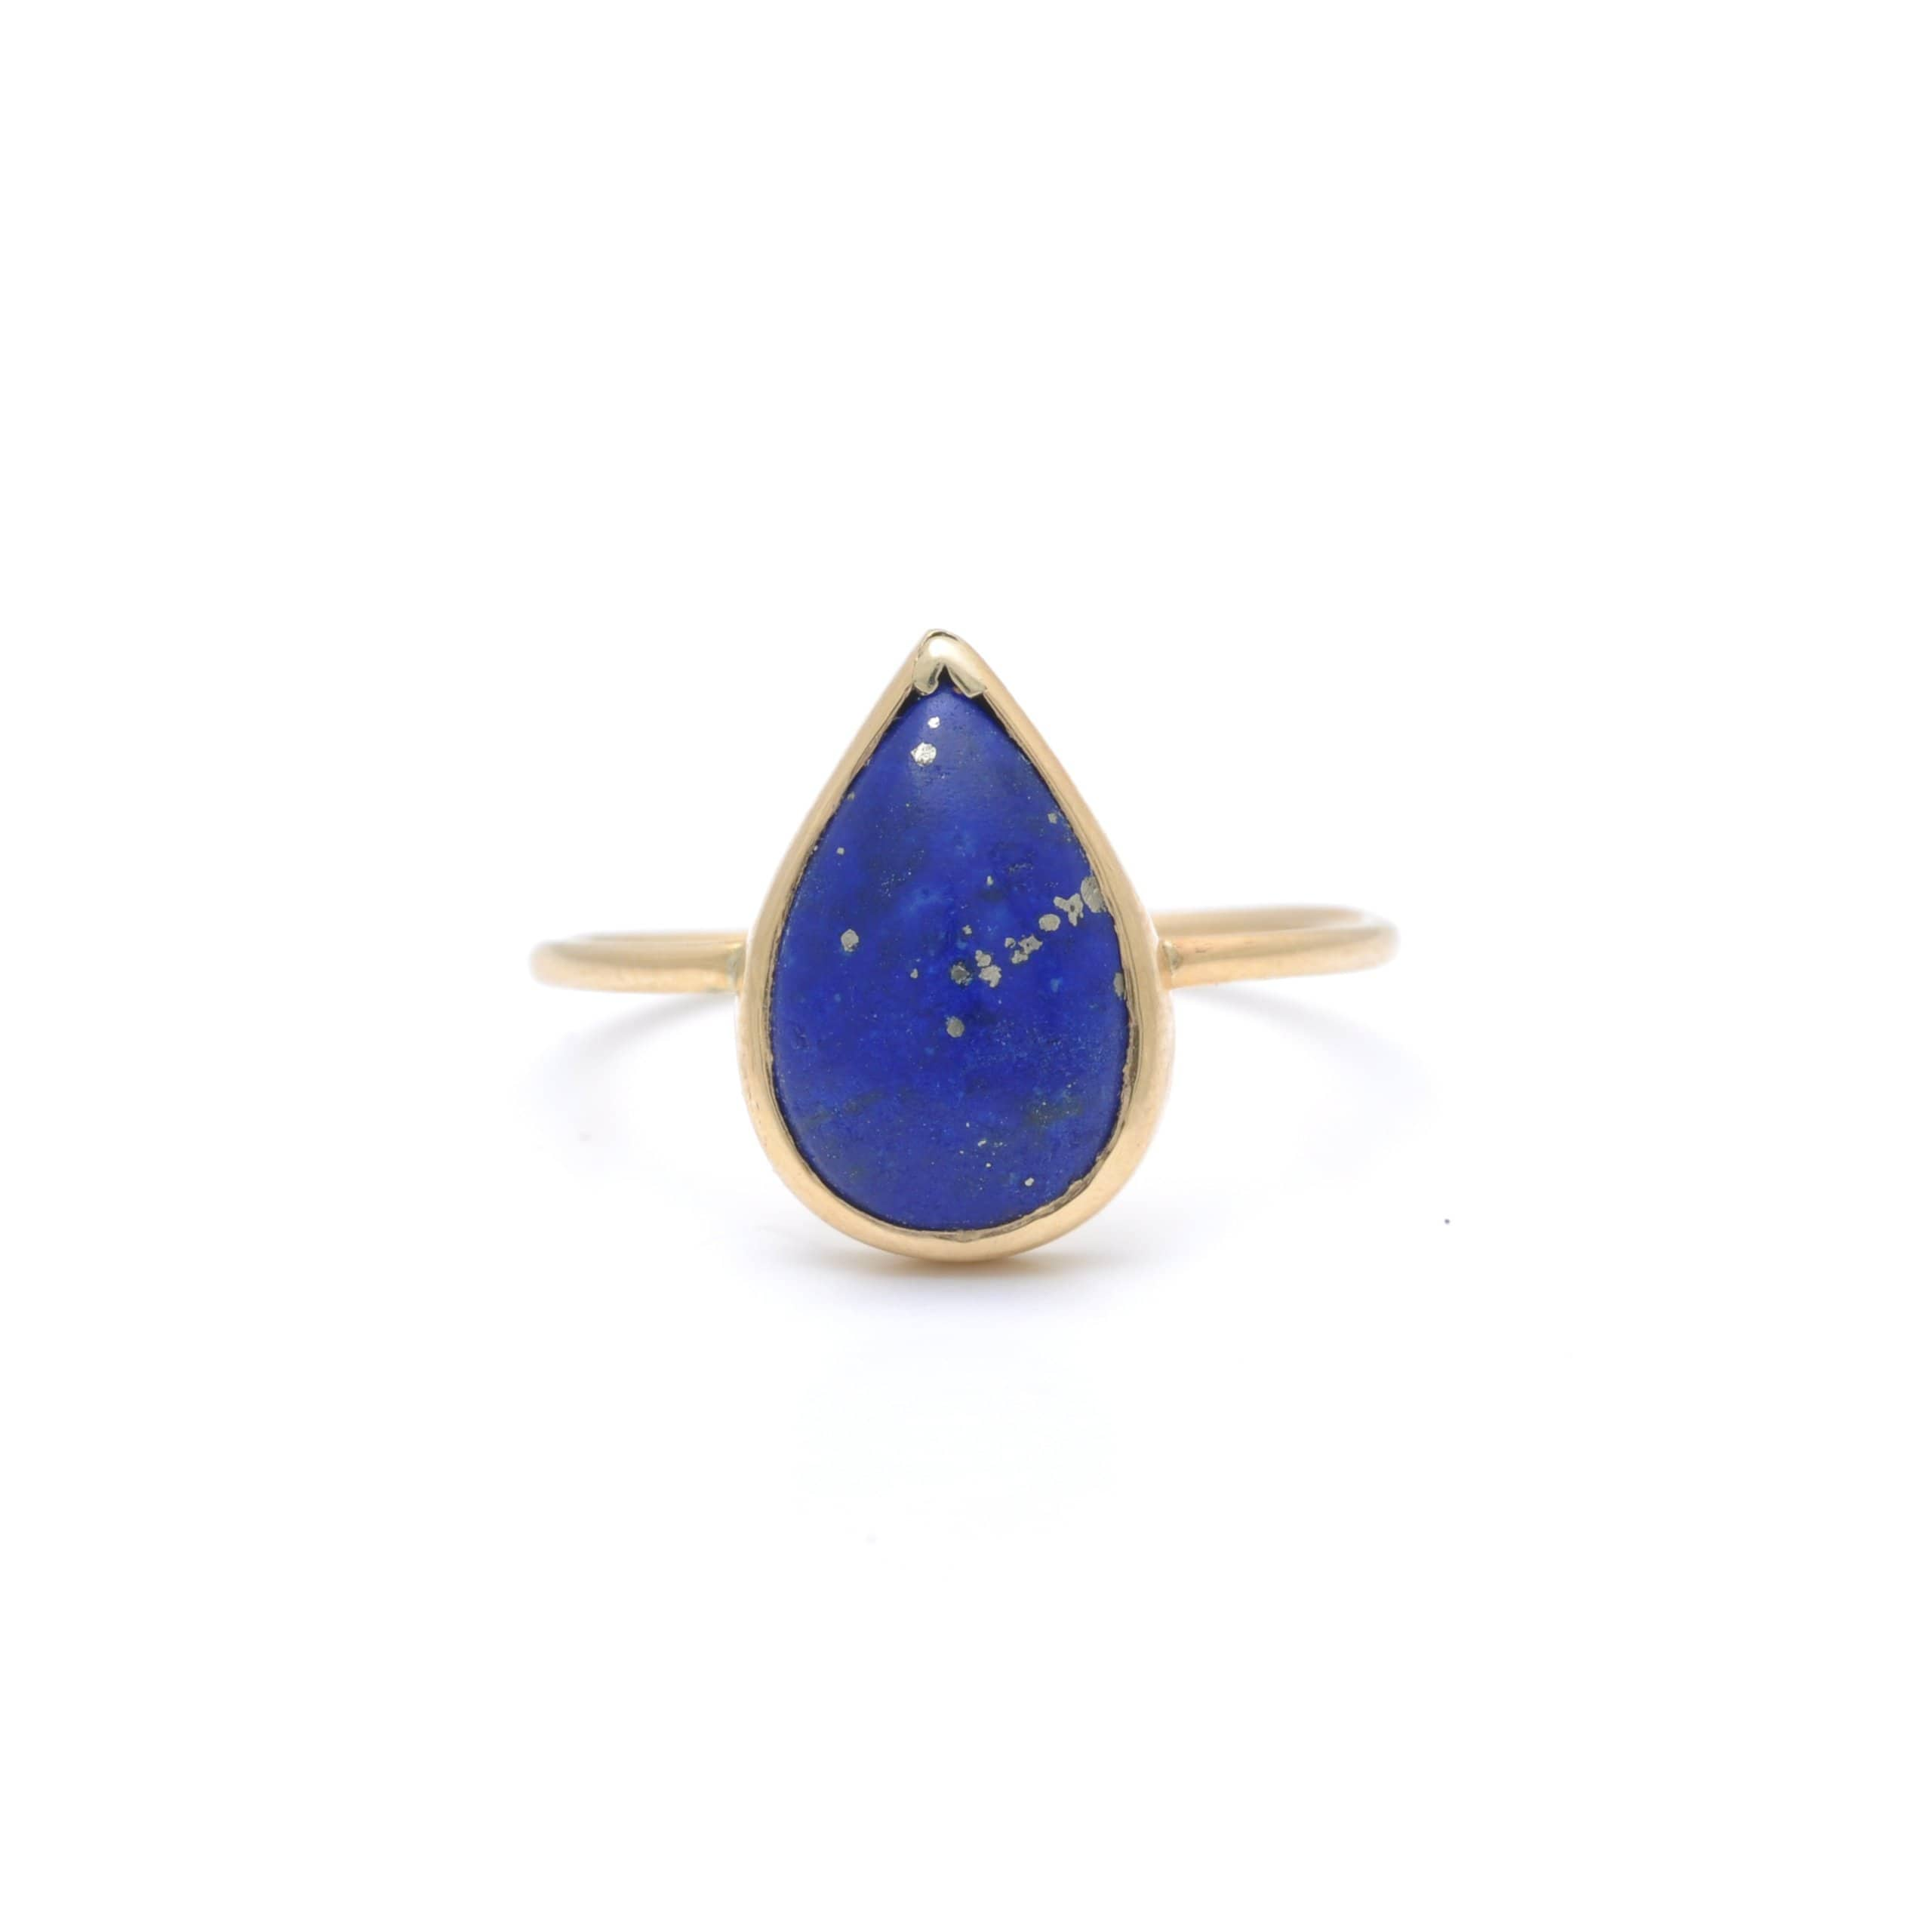 Lapis Lazuli Pear Cut Yellow Gold Ring Curated Los Angeles Caitlin nicole